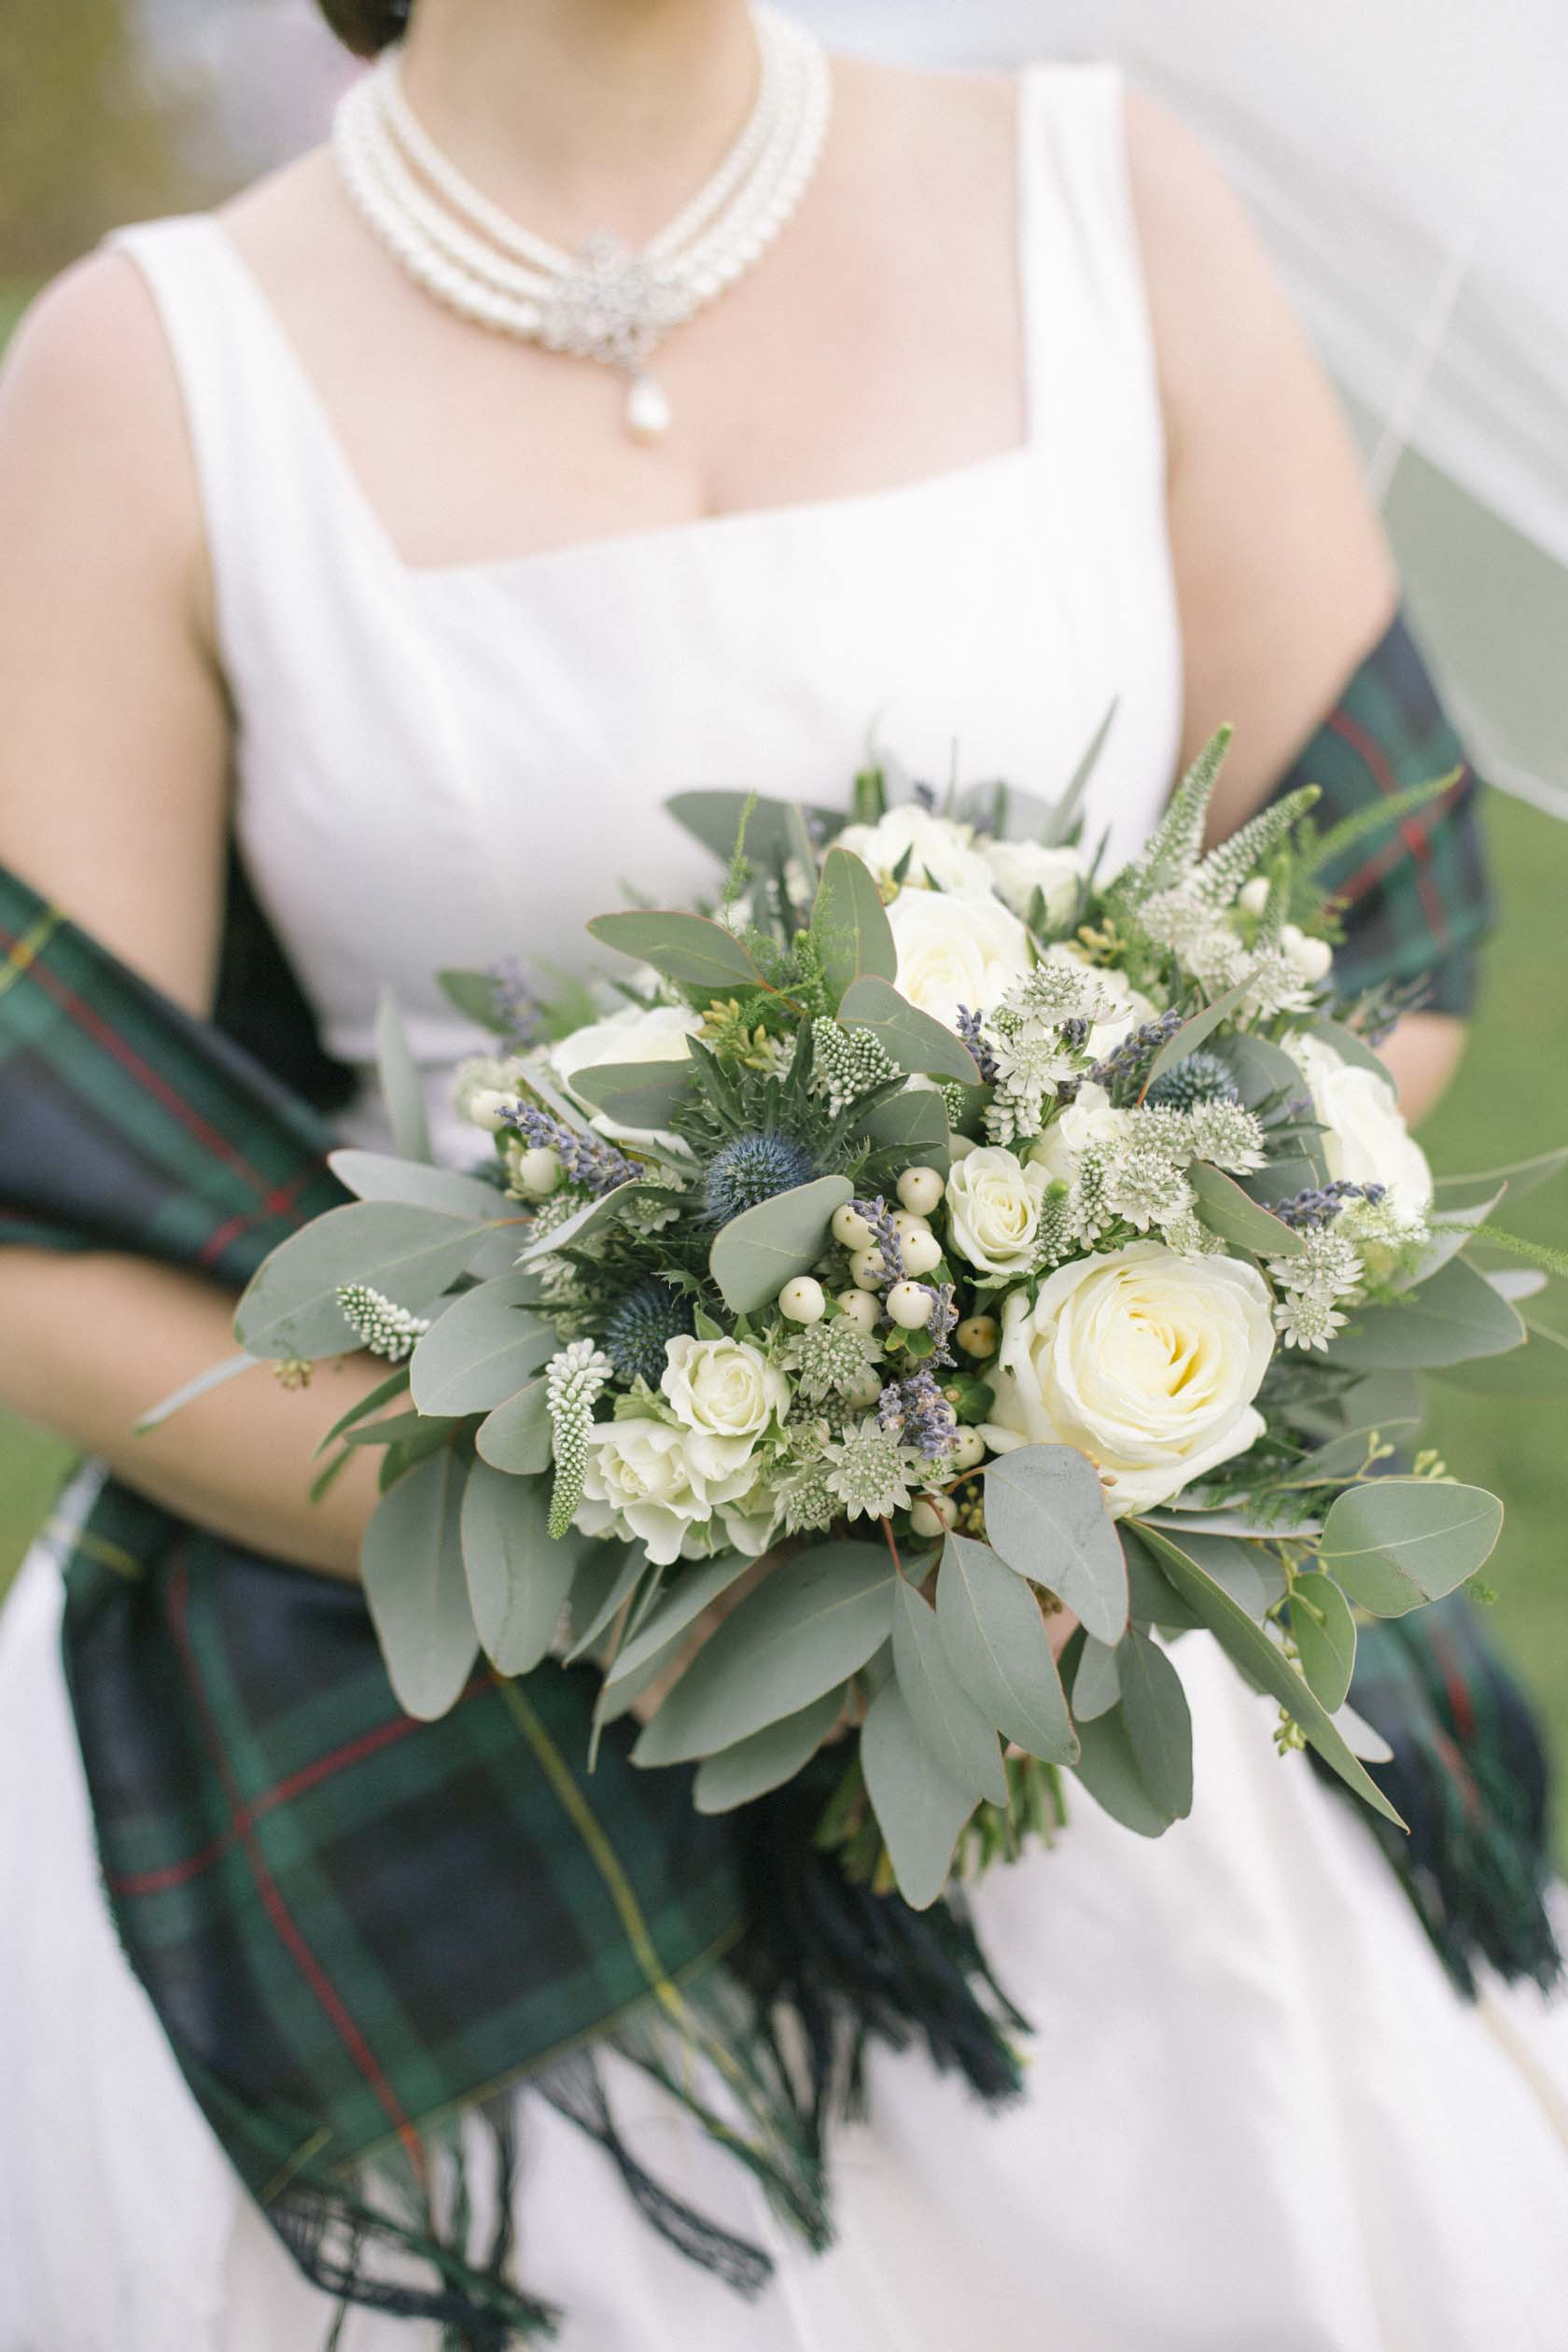 Edinburgh Castle Destination Wedding Bouquet | Edinburgh Wedding Photographer | Natural Scottish Wedding Photography | American Bride | Green Wedding Tartan